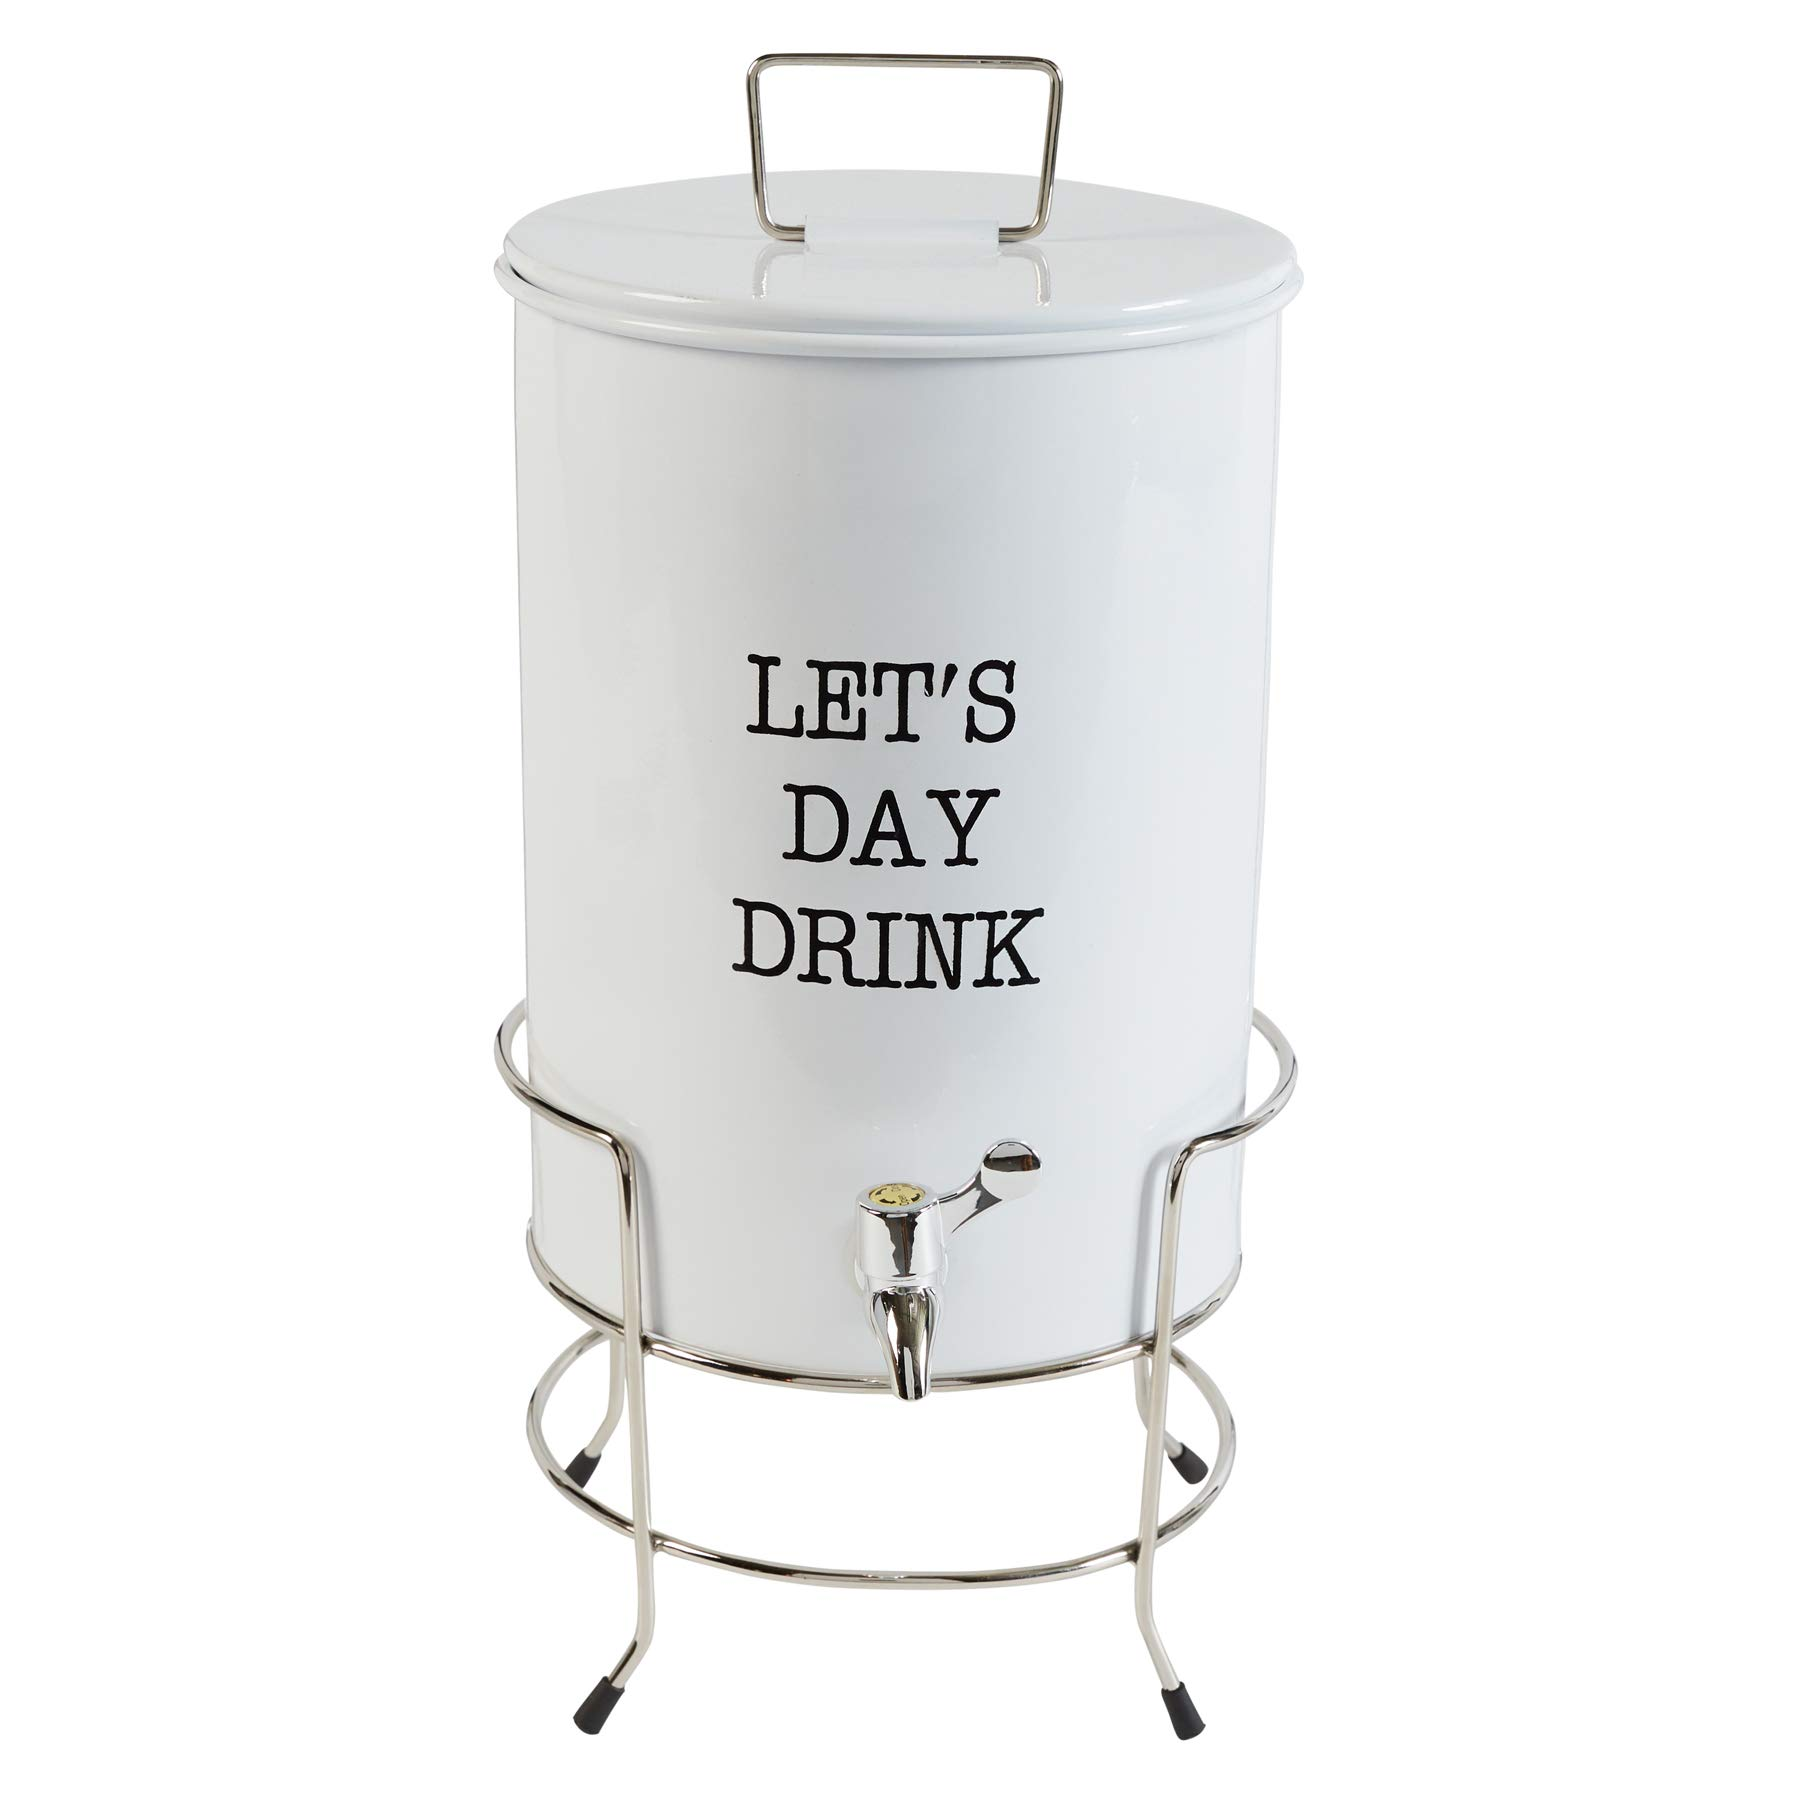 Mud Pie Farmhouse Inspired Beverage Pitcher Let's Day Drink Dispenser with Stand White